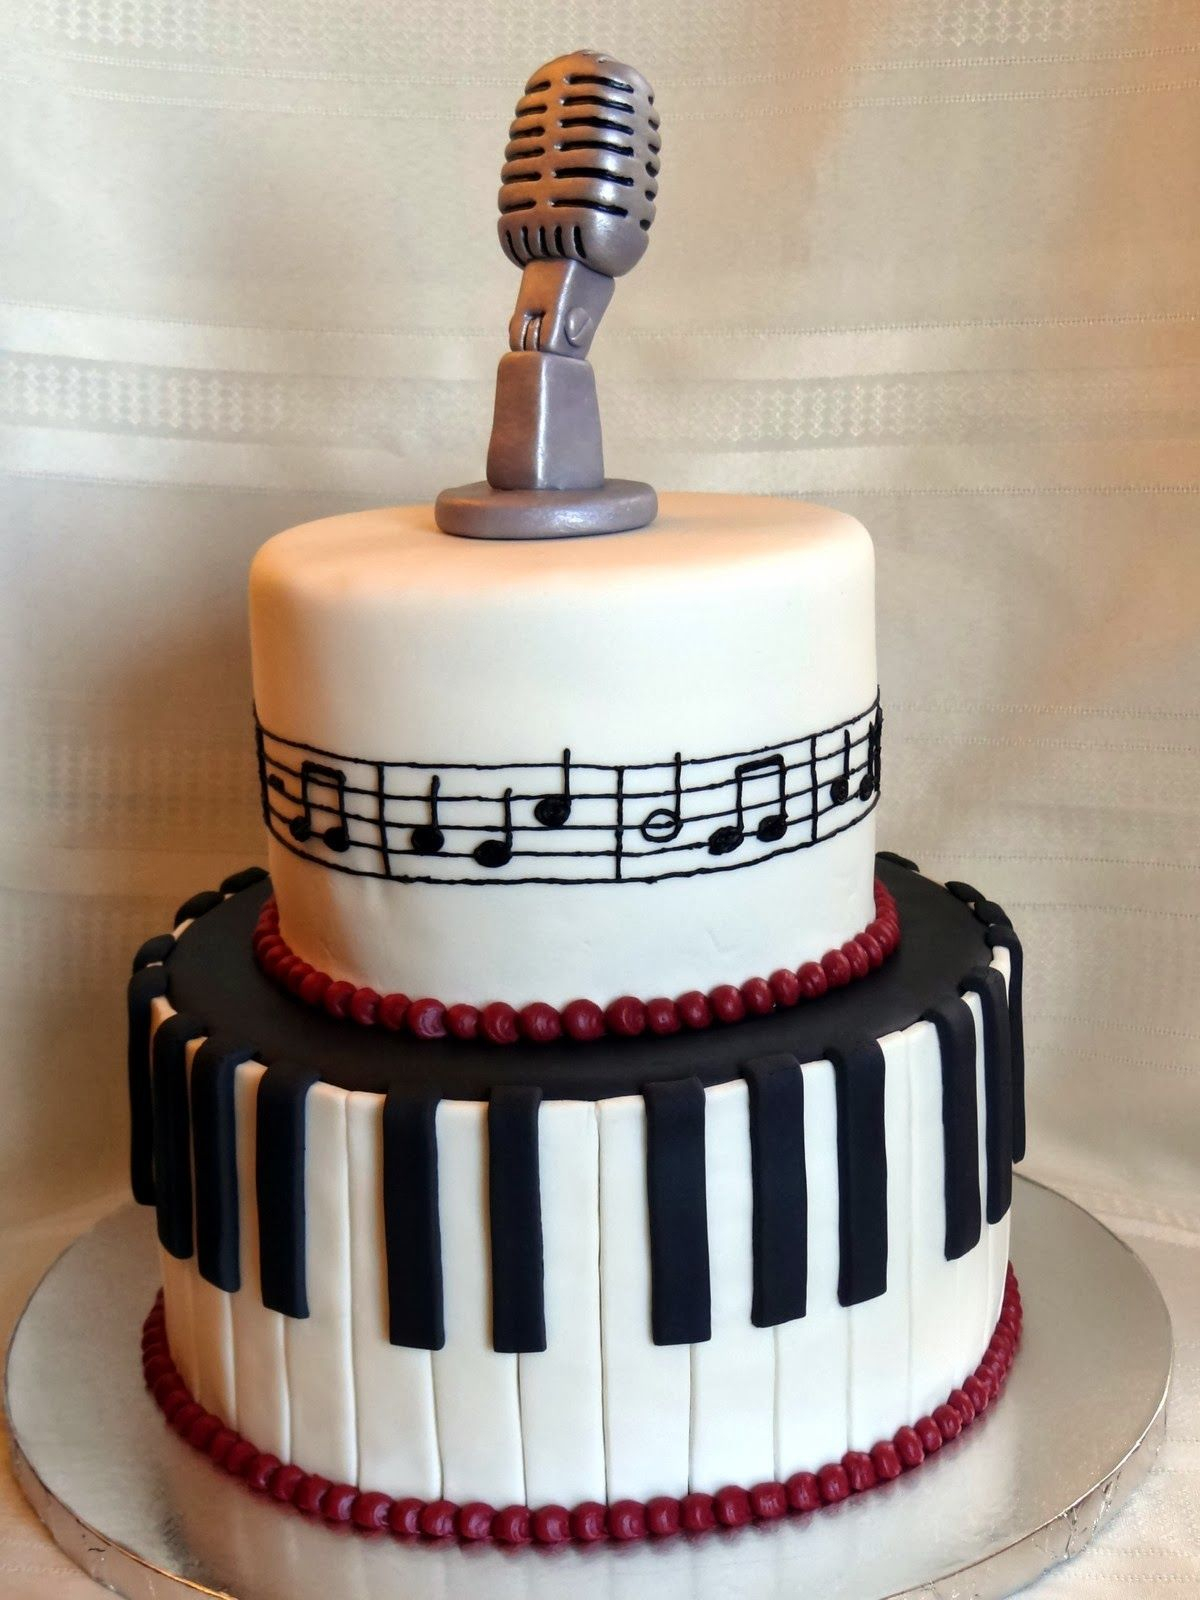 Music Birthday Cakes Tiers Of Joy Cakery Music Cake With Keyboard Microphone Music